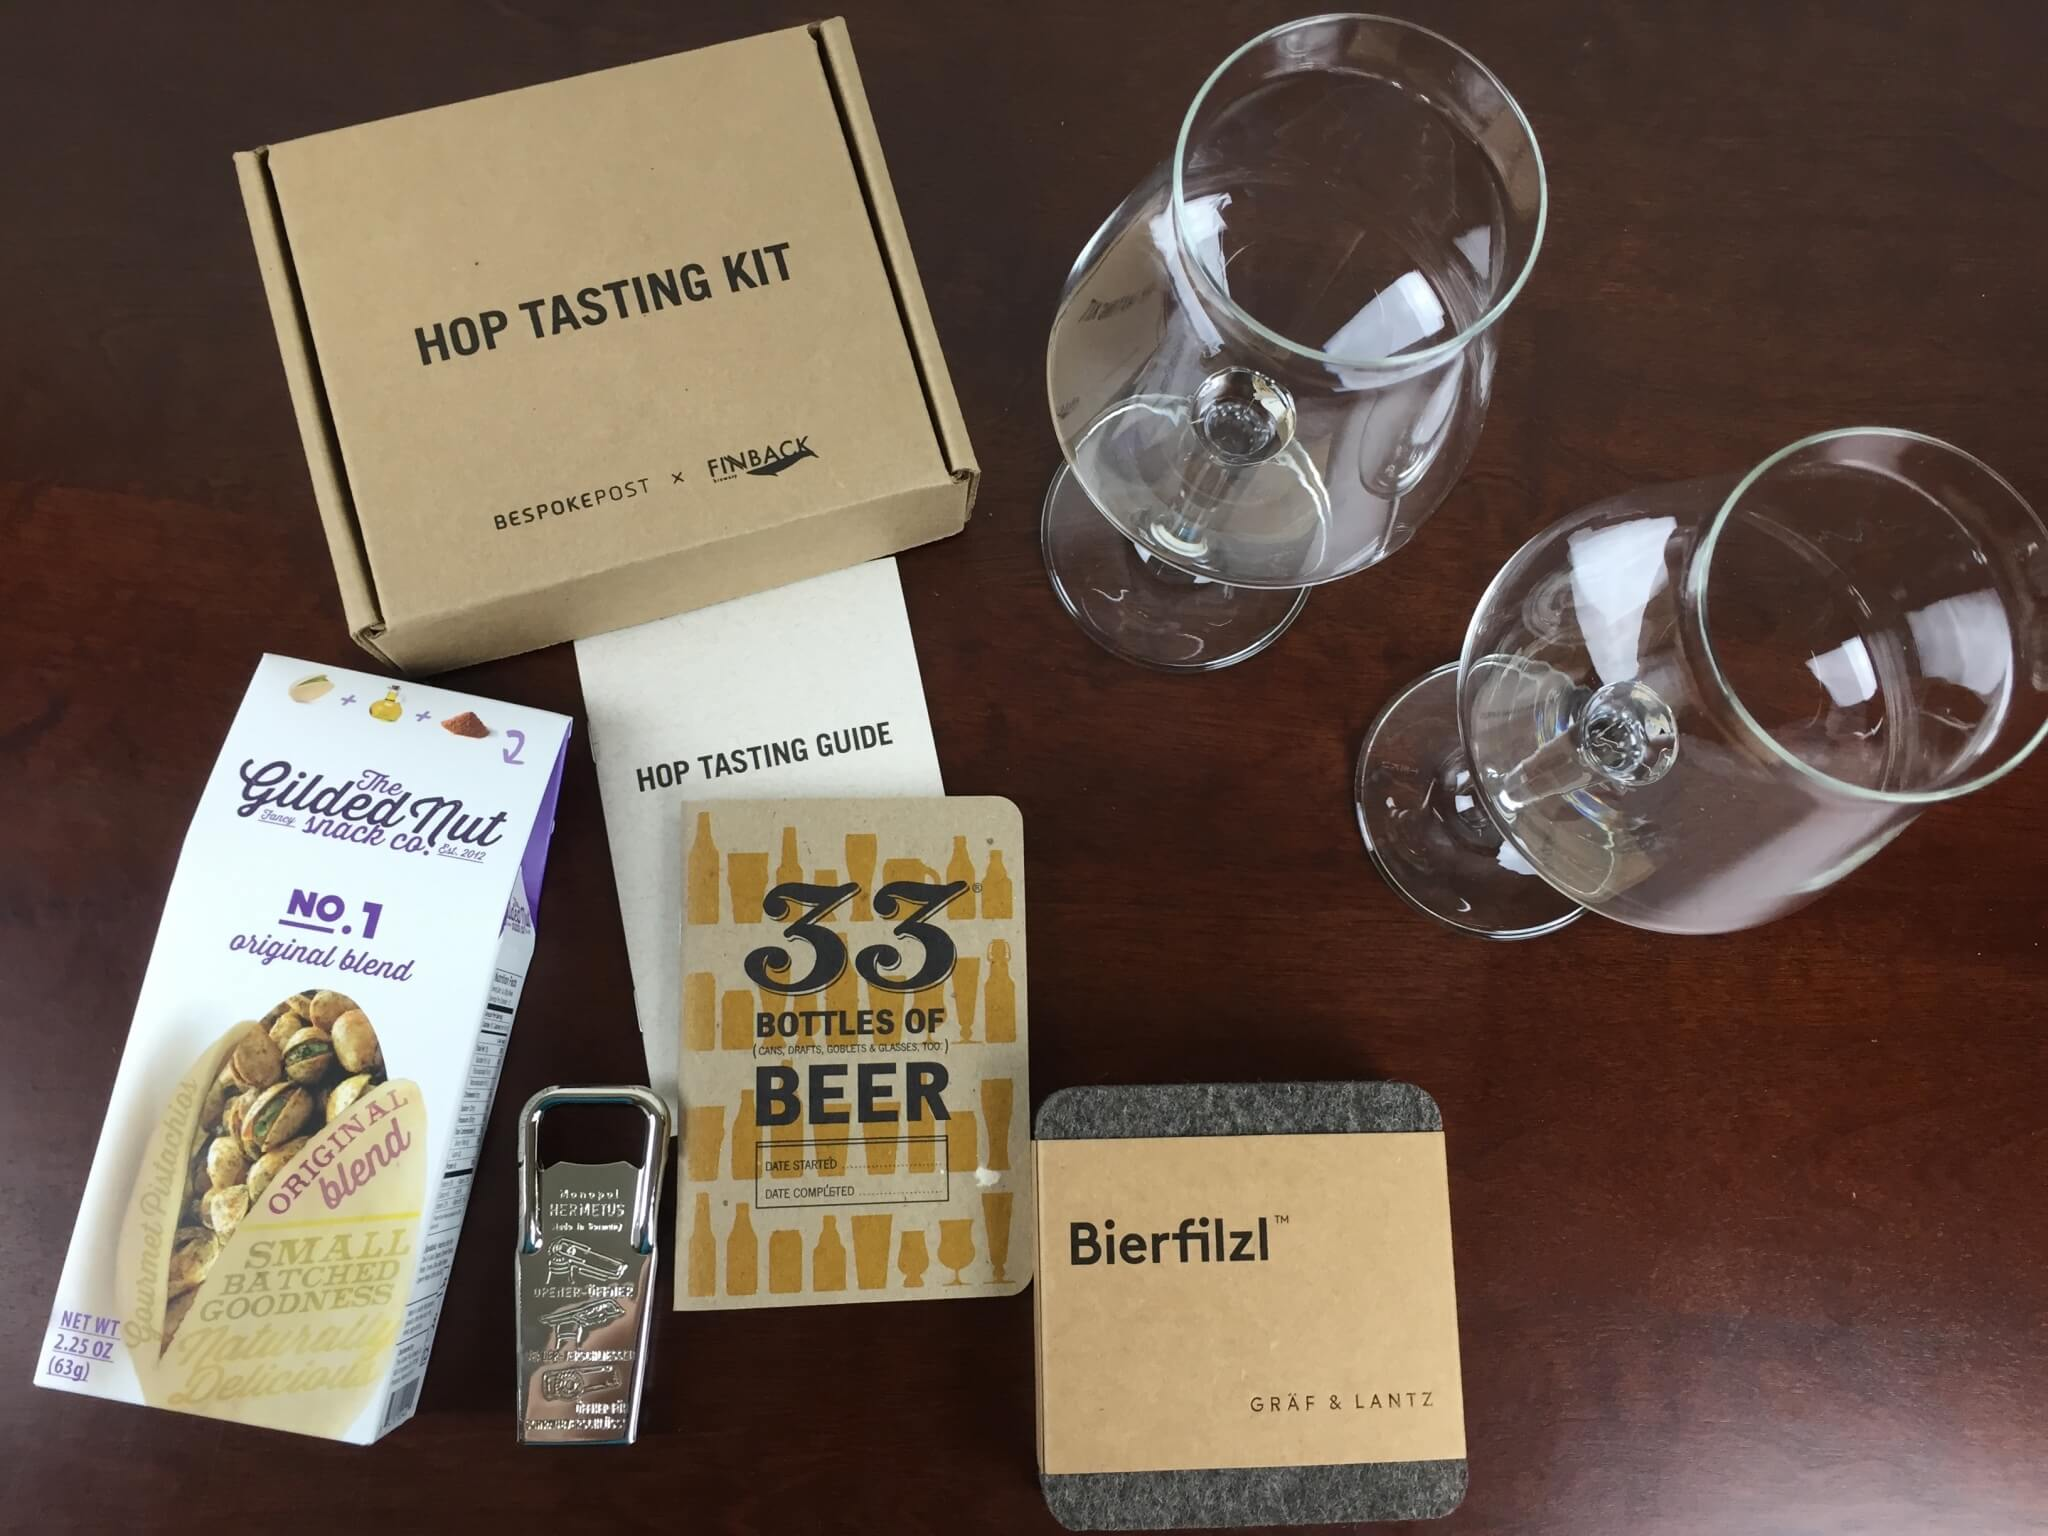 Bespoke Post CHEERS Box Review & Coupon - July 2015